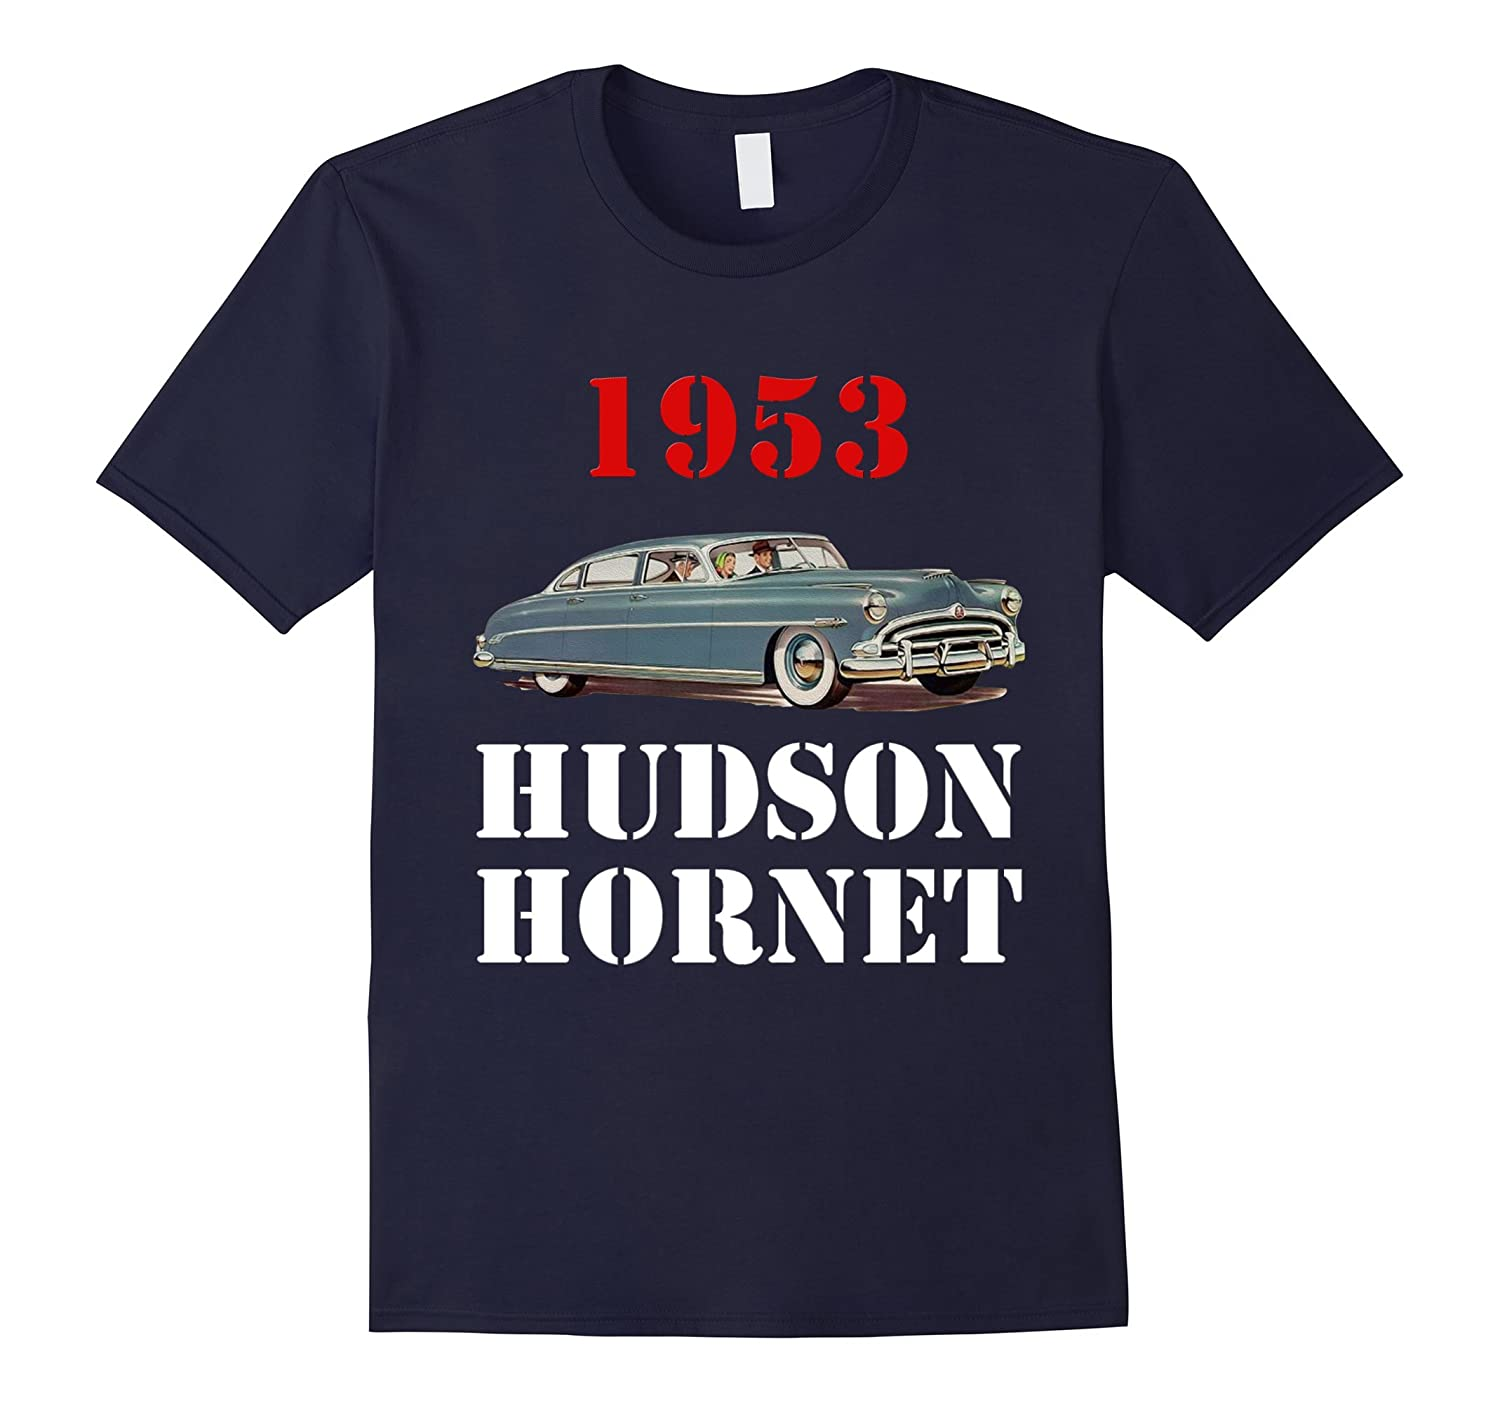 1953 Hudson Hornet Incredible Design T-shirt-TH